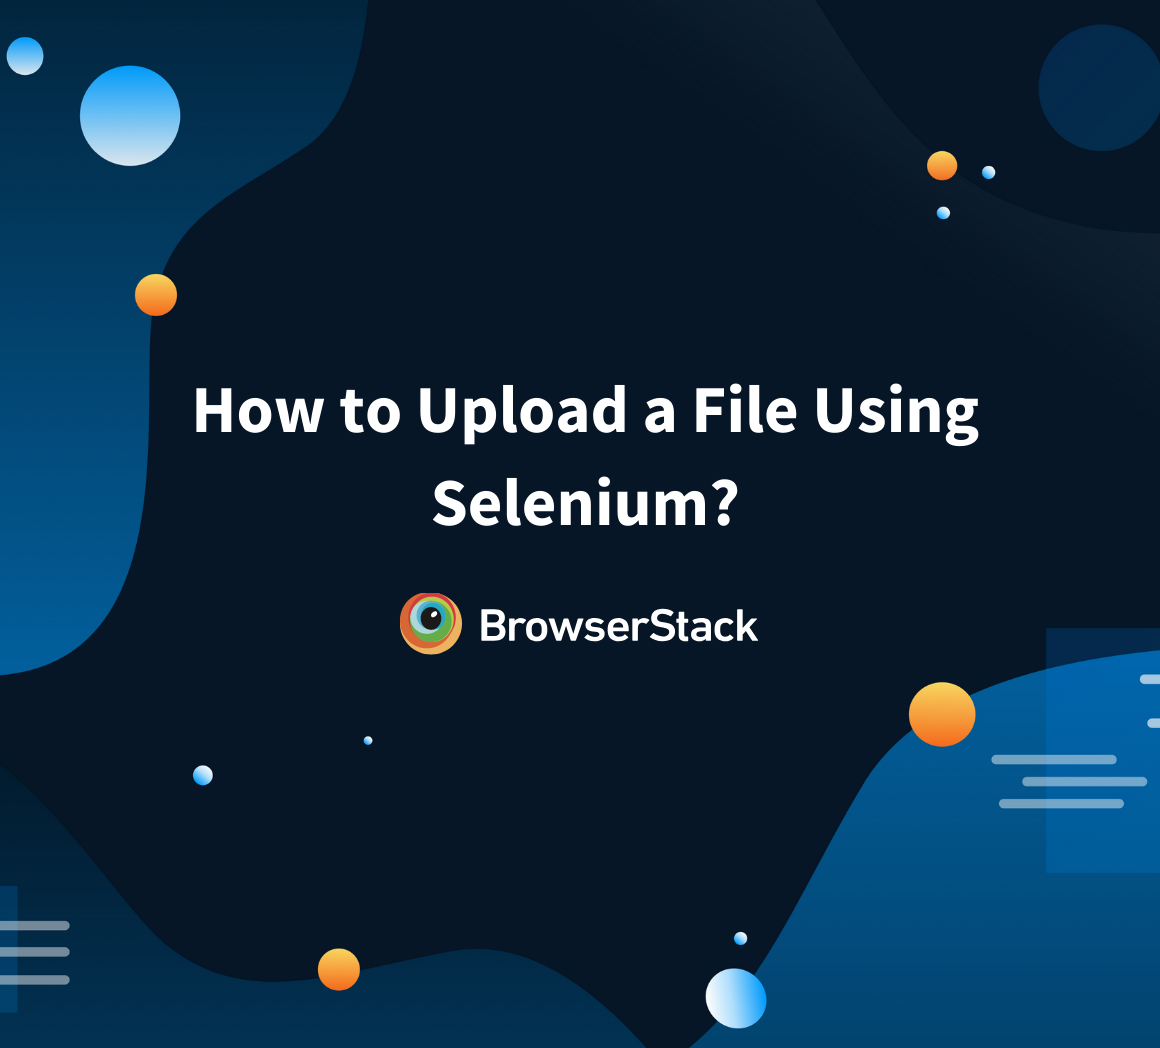 How to upload a file in Selenium